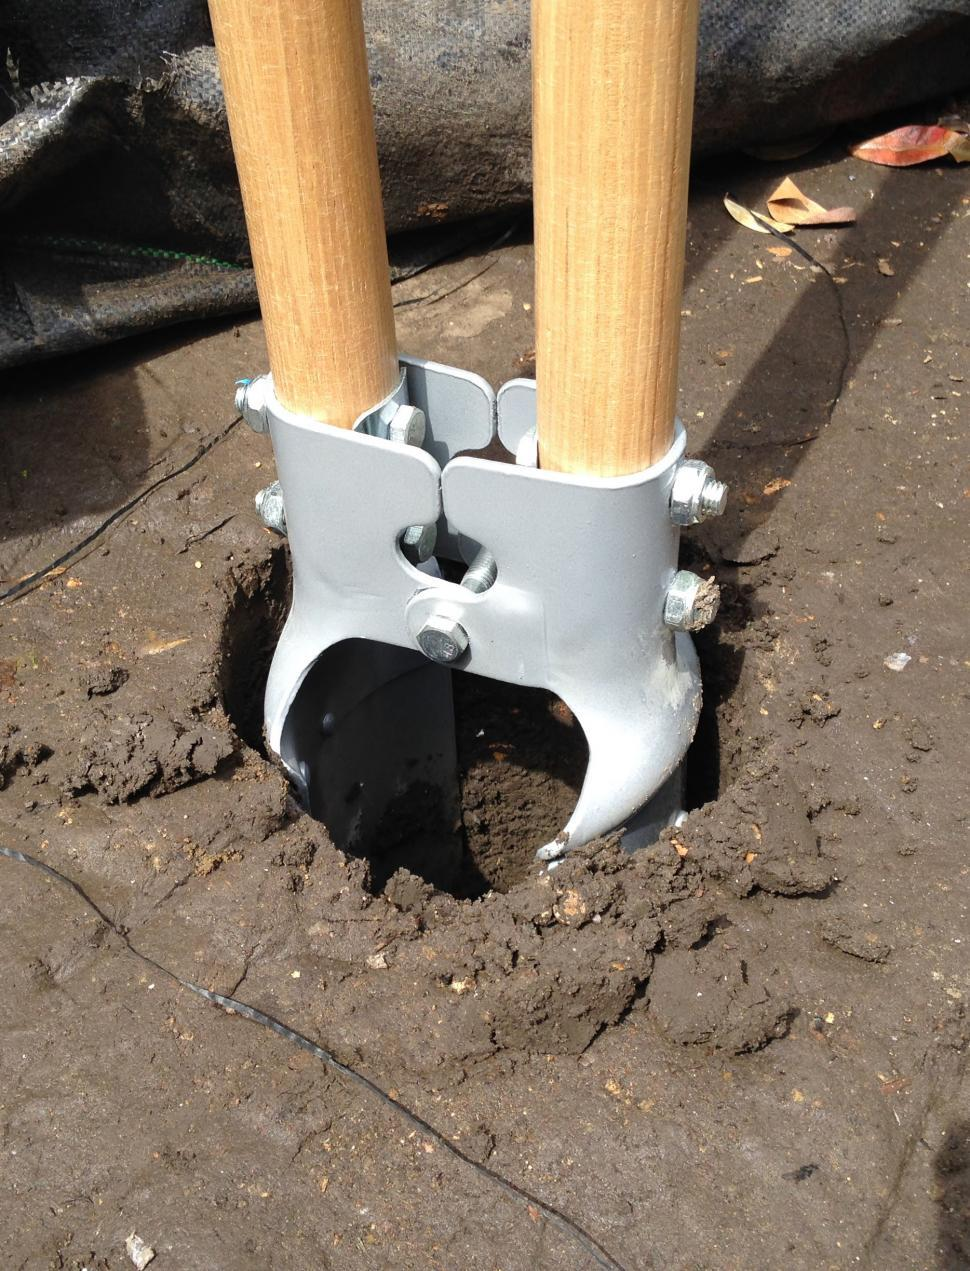 Download Free Stock HD Photo of Post hole digger in hole Online